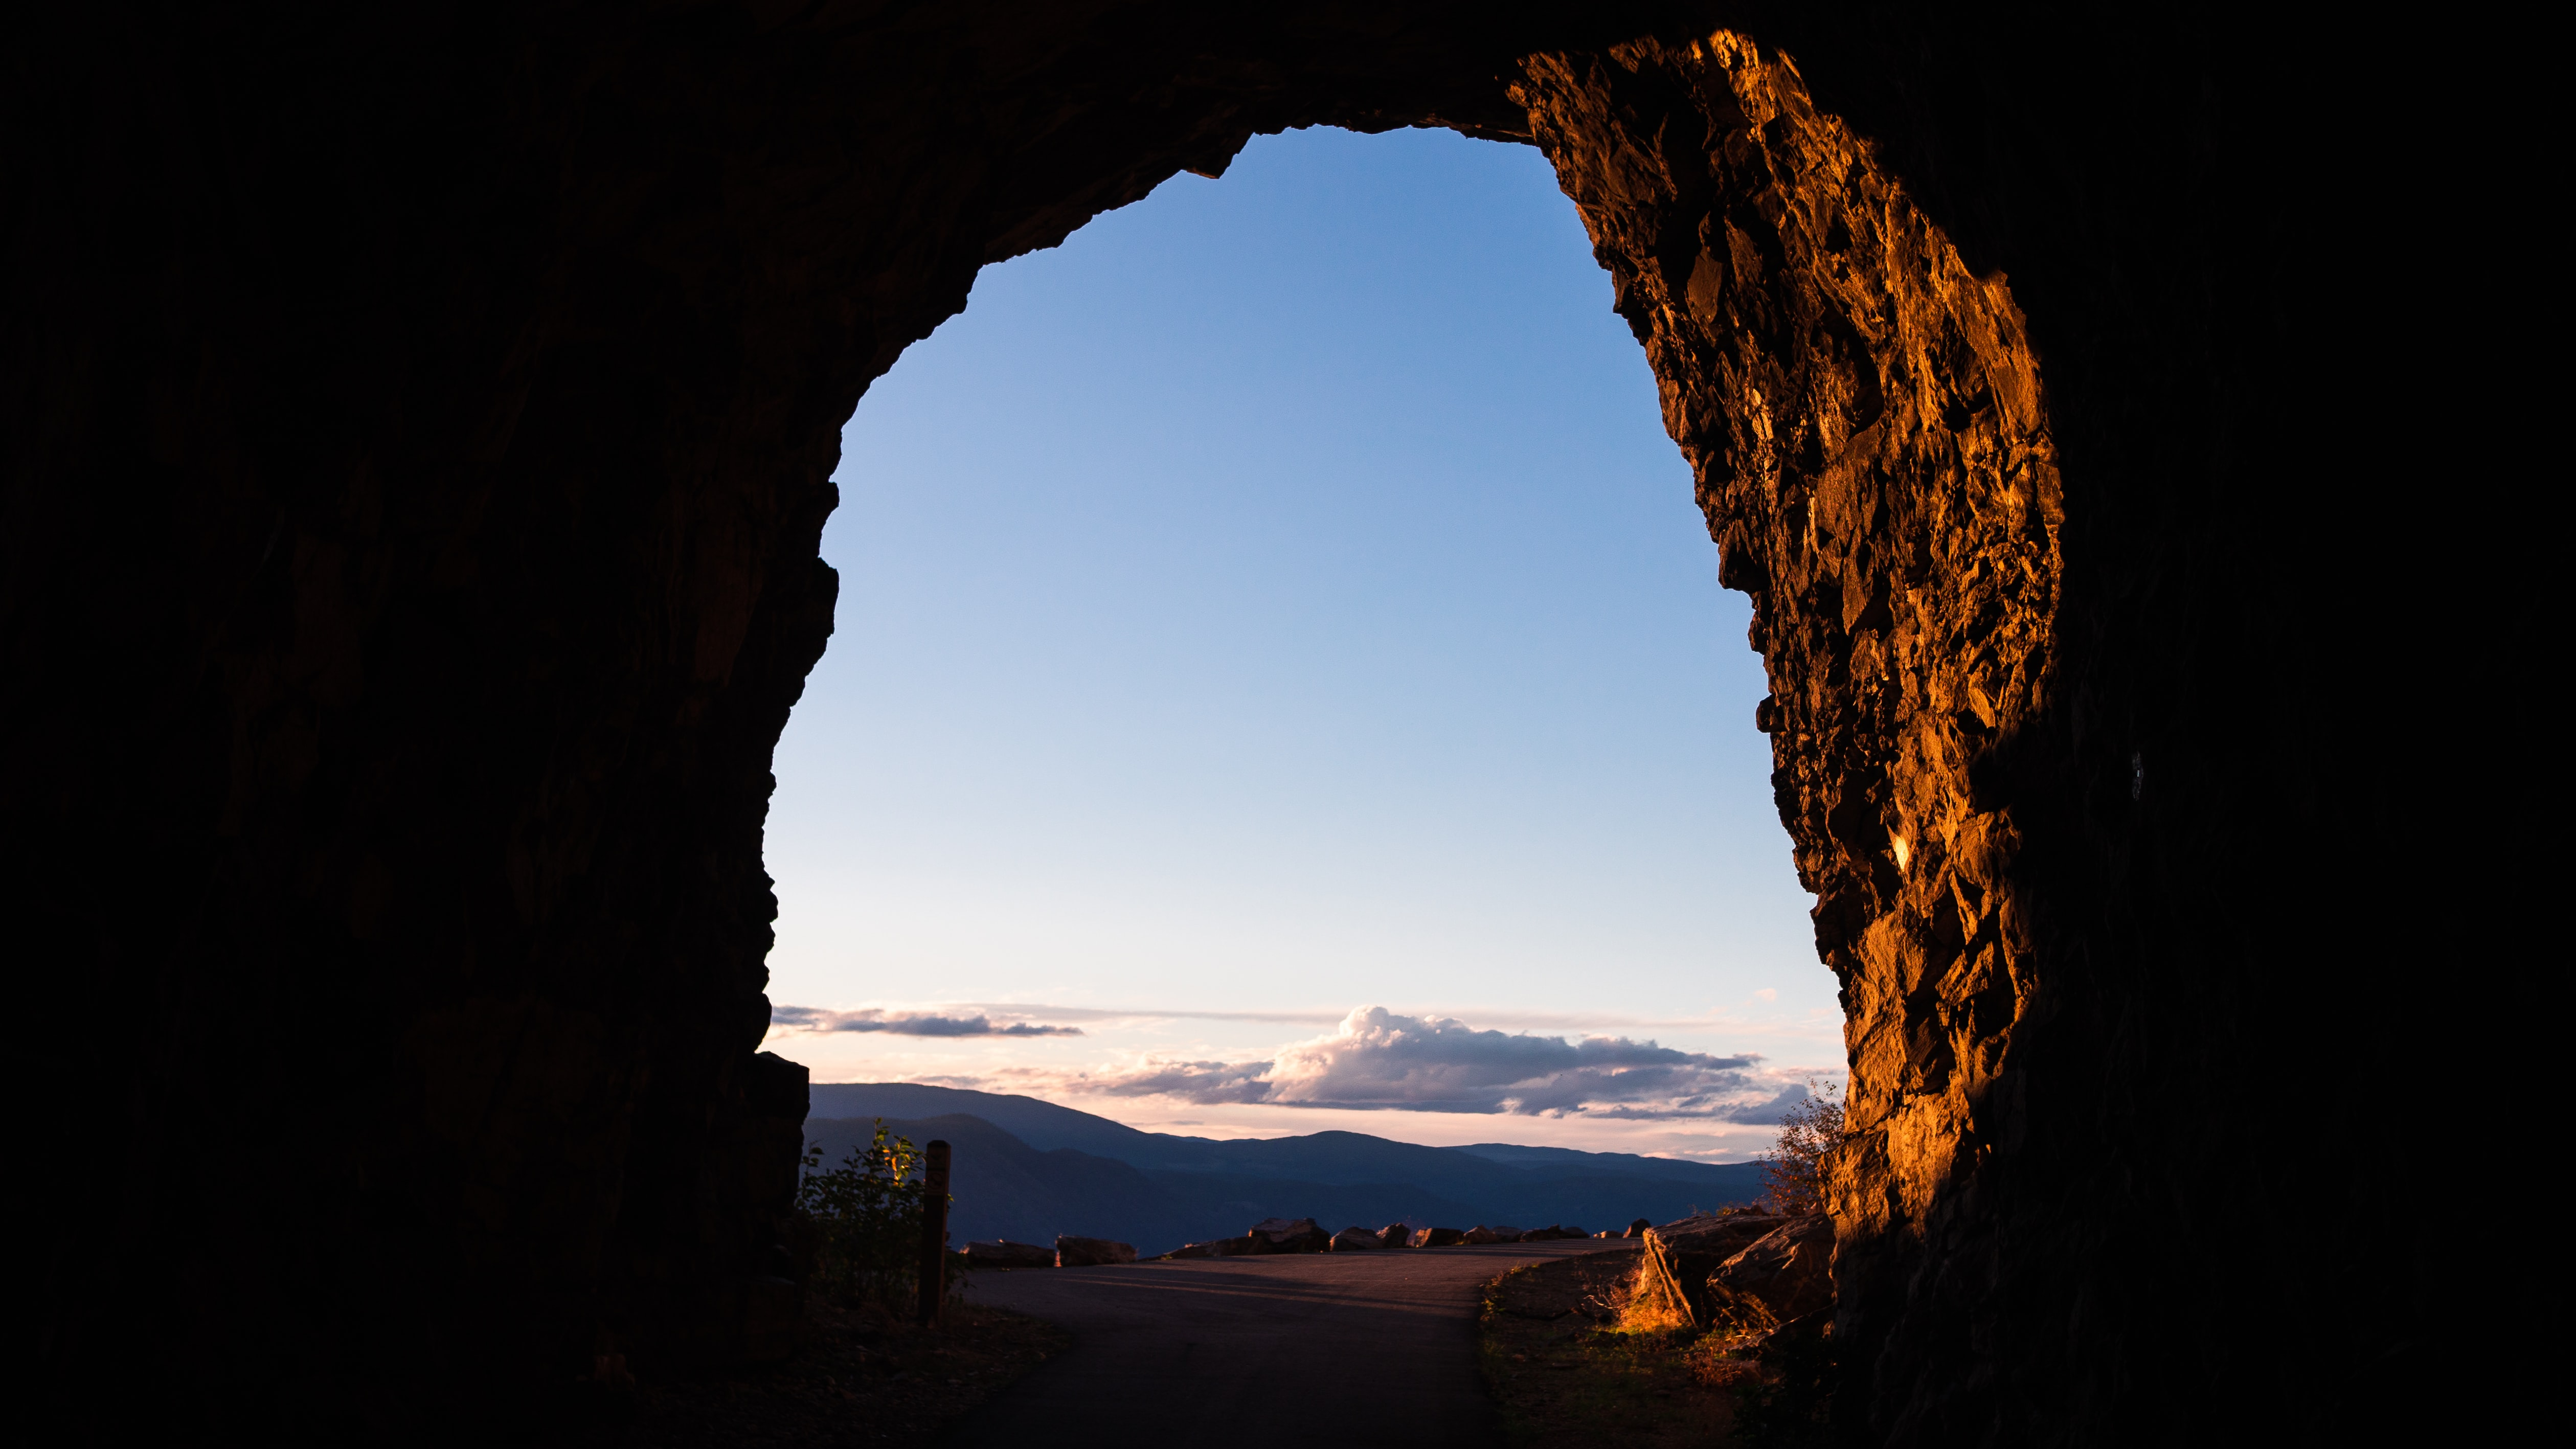 cave entrance with clouds and mountain in background